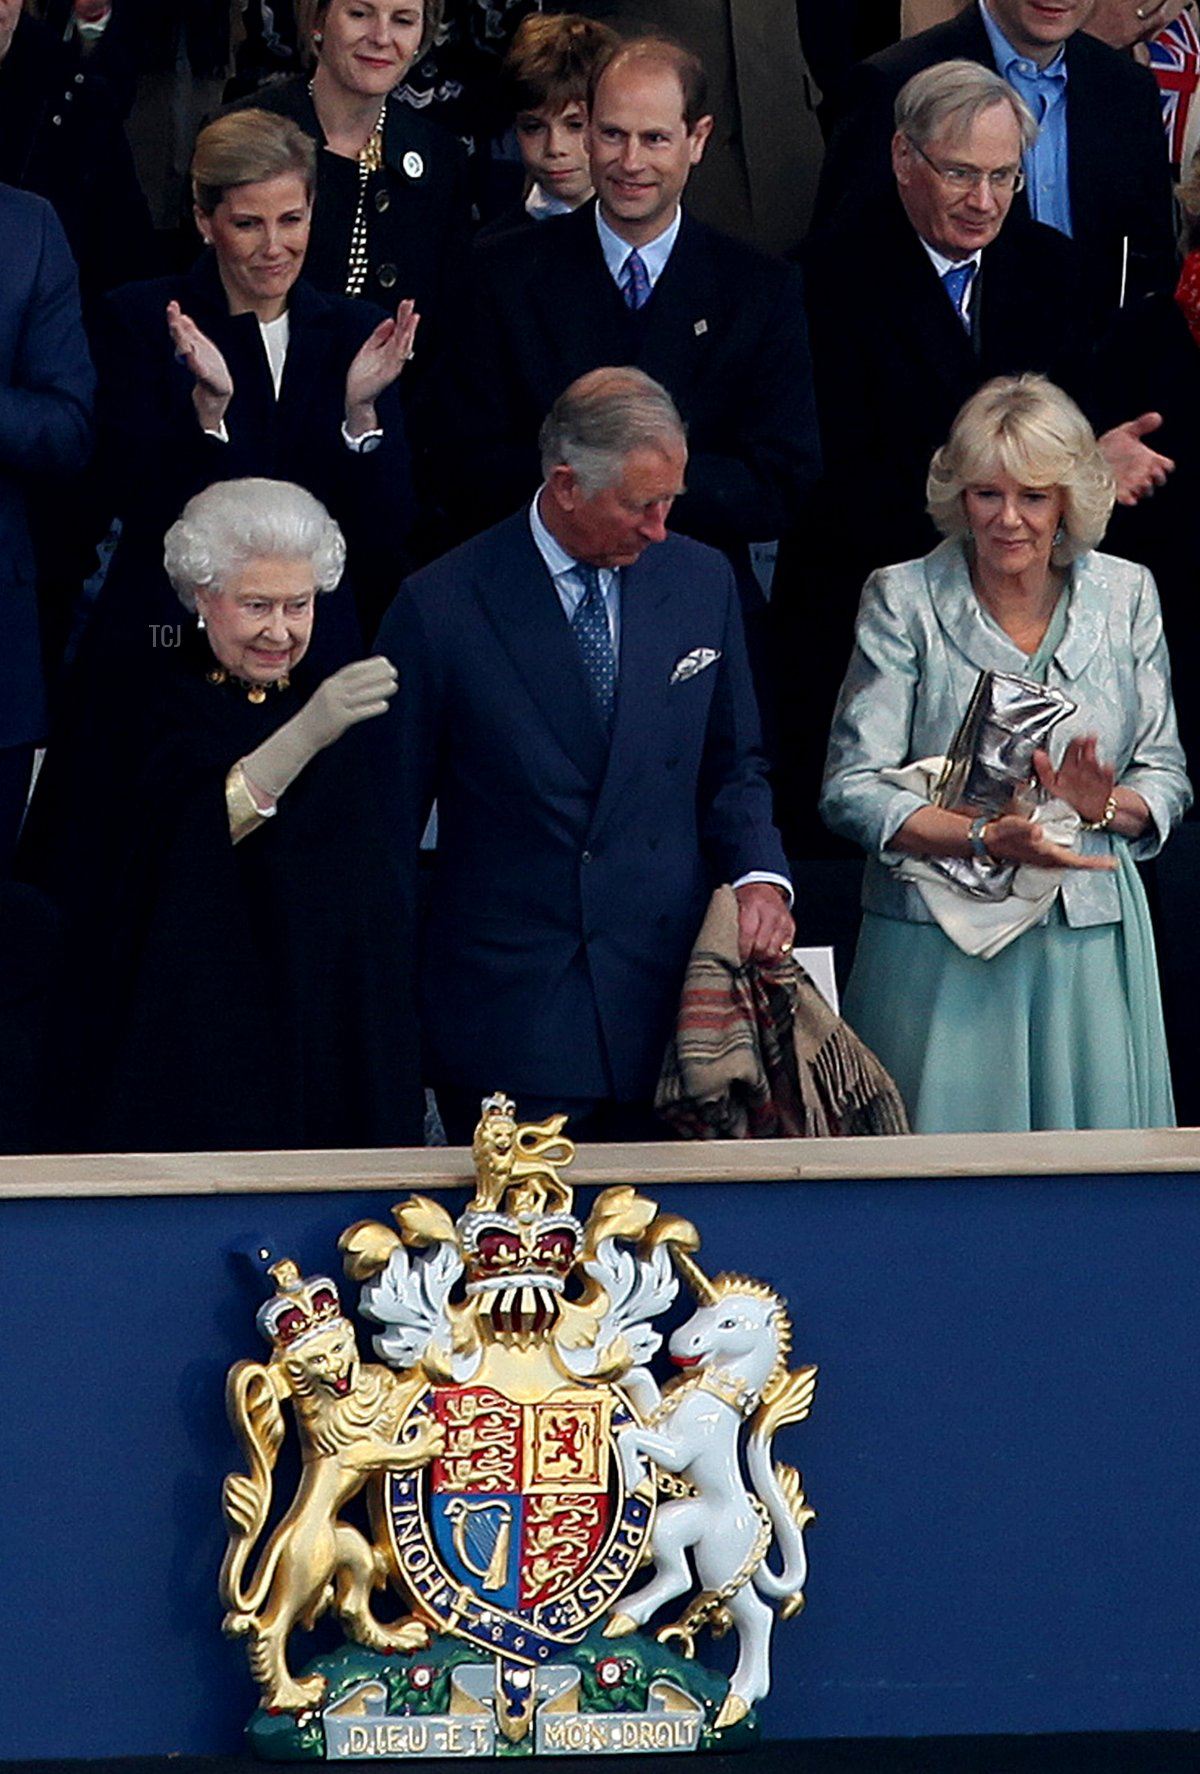 Britain's Queen Elizabeth II (L front row) waves from the Royal Box surrounded by guests including members of the royal family Prince Charles, Prince of Wales (front C), Camilla, Duchess of Cornwall (front R) Sophie, Countess of Wessex (top L), Prince Edward, Earl of Wessex (top C) and Prince Richard, Duke of Gloucester (top R) during the Queen's Diamond Jubilee Concert at Buckingham Palace on June 4, 2012